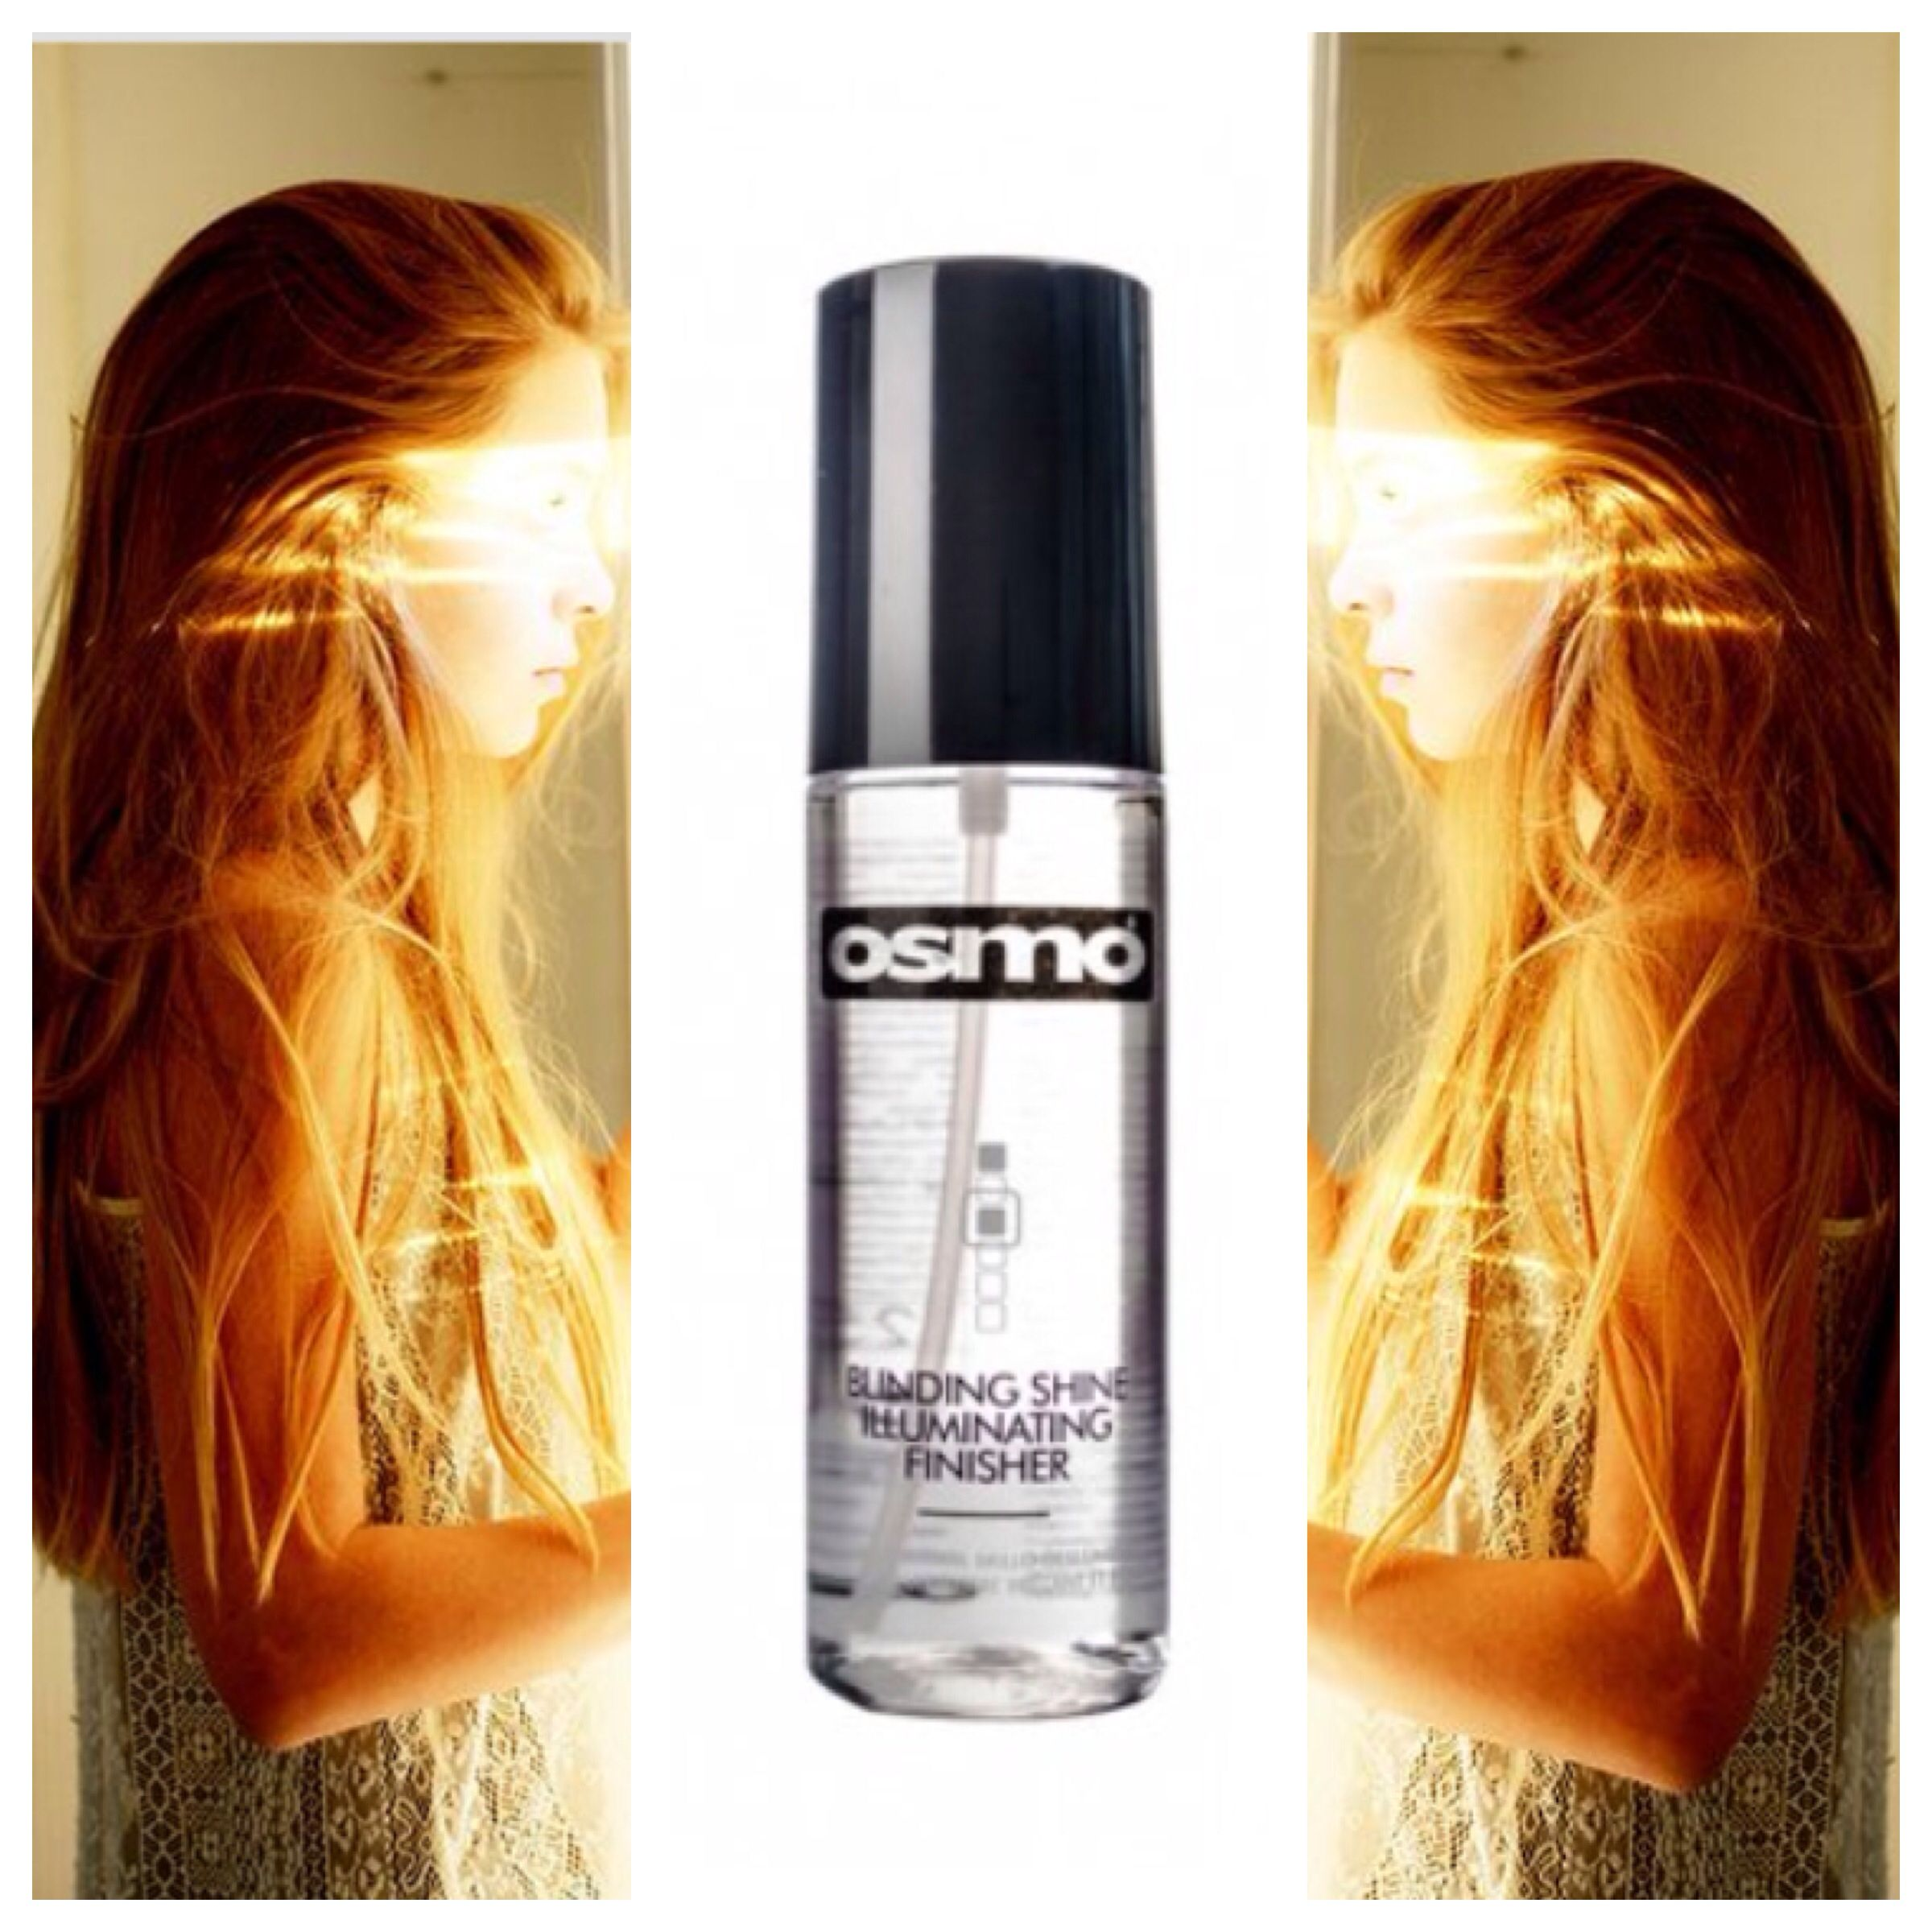 Osmo blinding illuminatingfinisher big shine beautiful hair